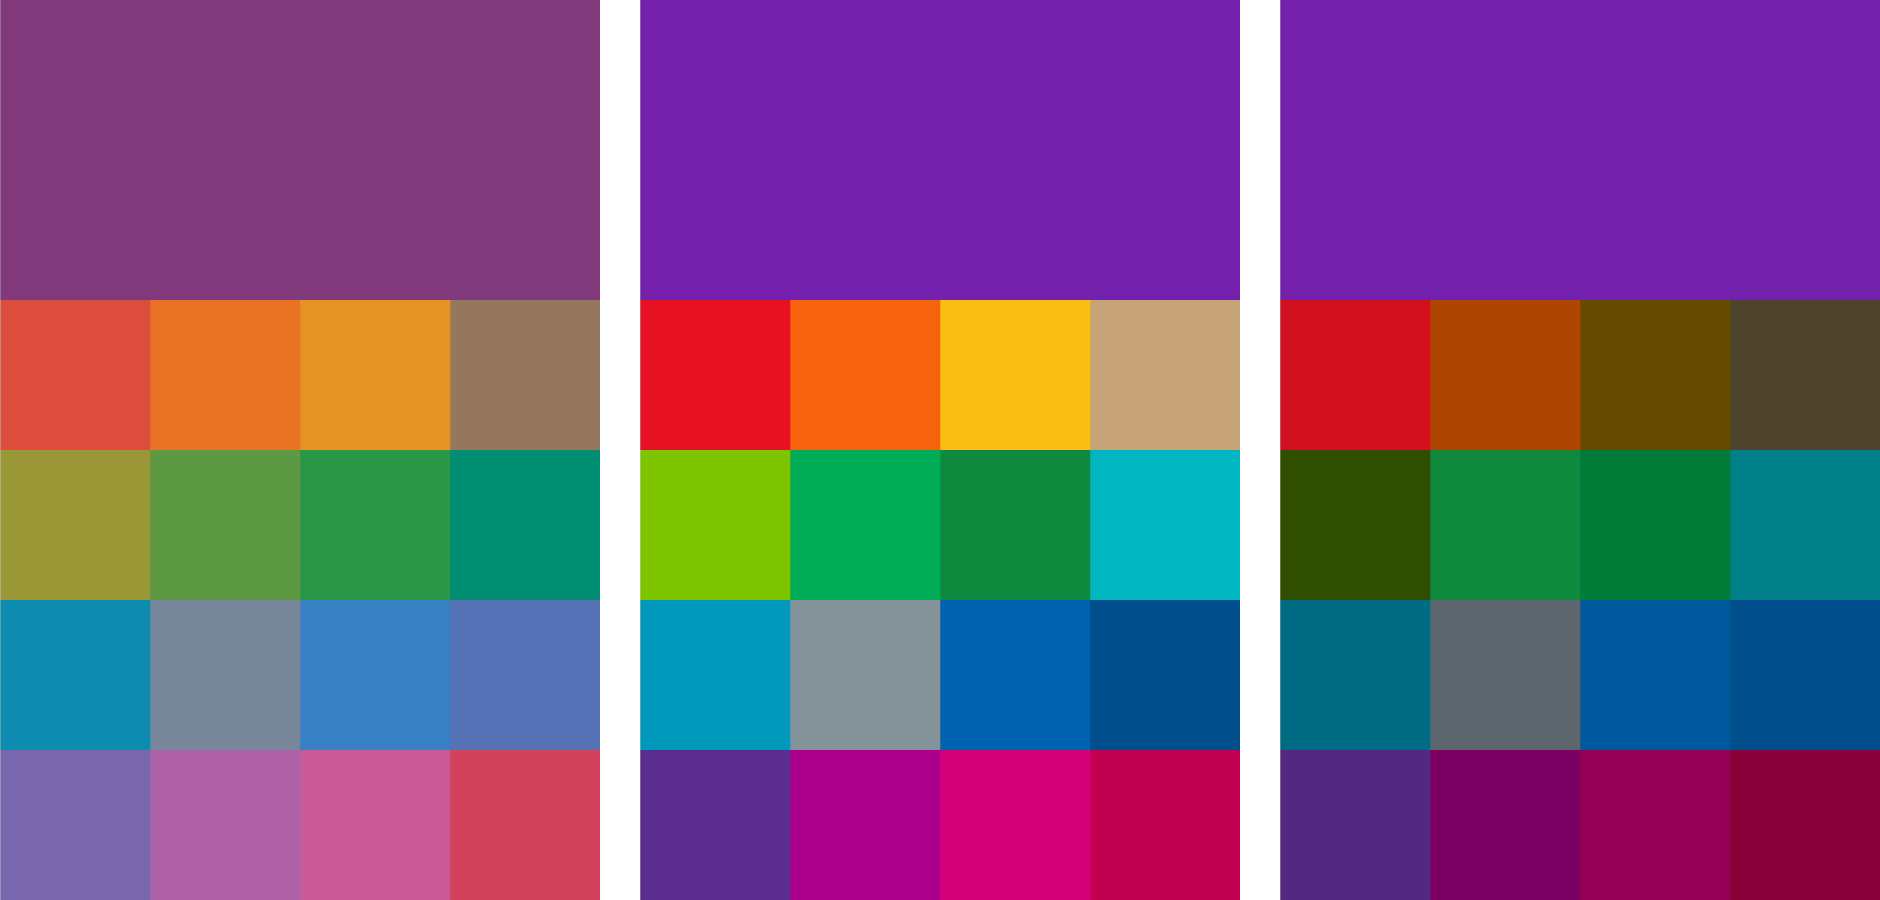 Layout of the old OneNote color palette, the new color palette, and the A11y color palette